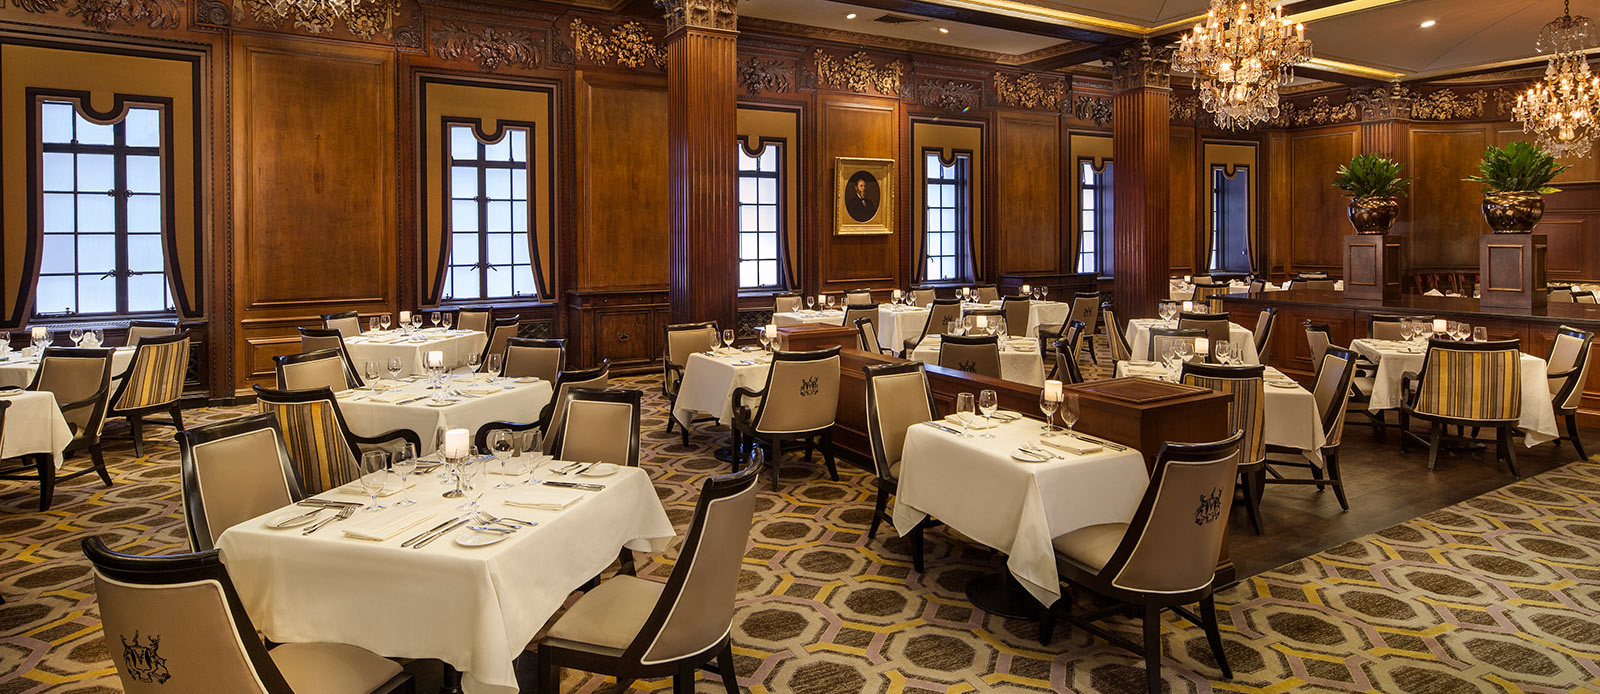 Image of the dining room at the Omni Parker House, Boston in Boston, Massachusetts